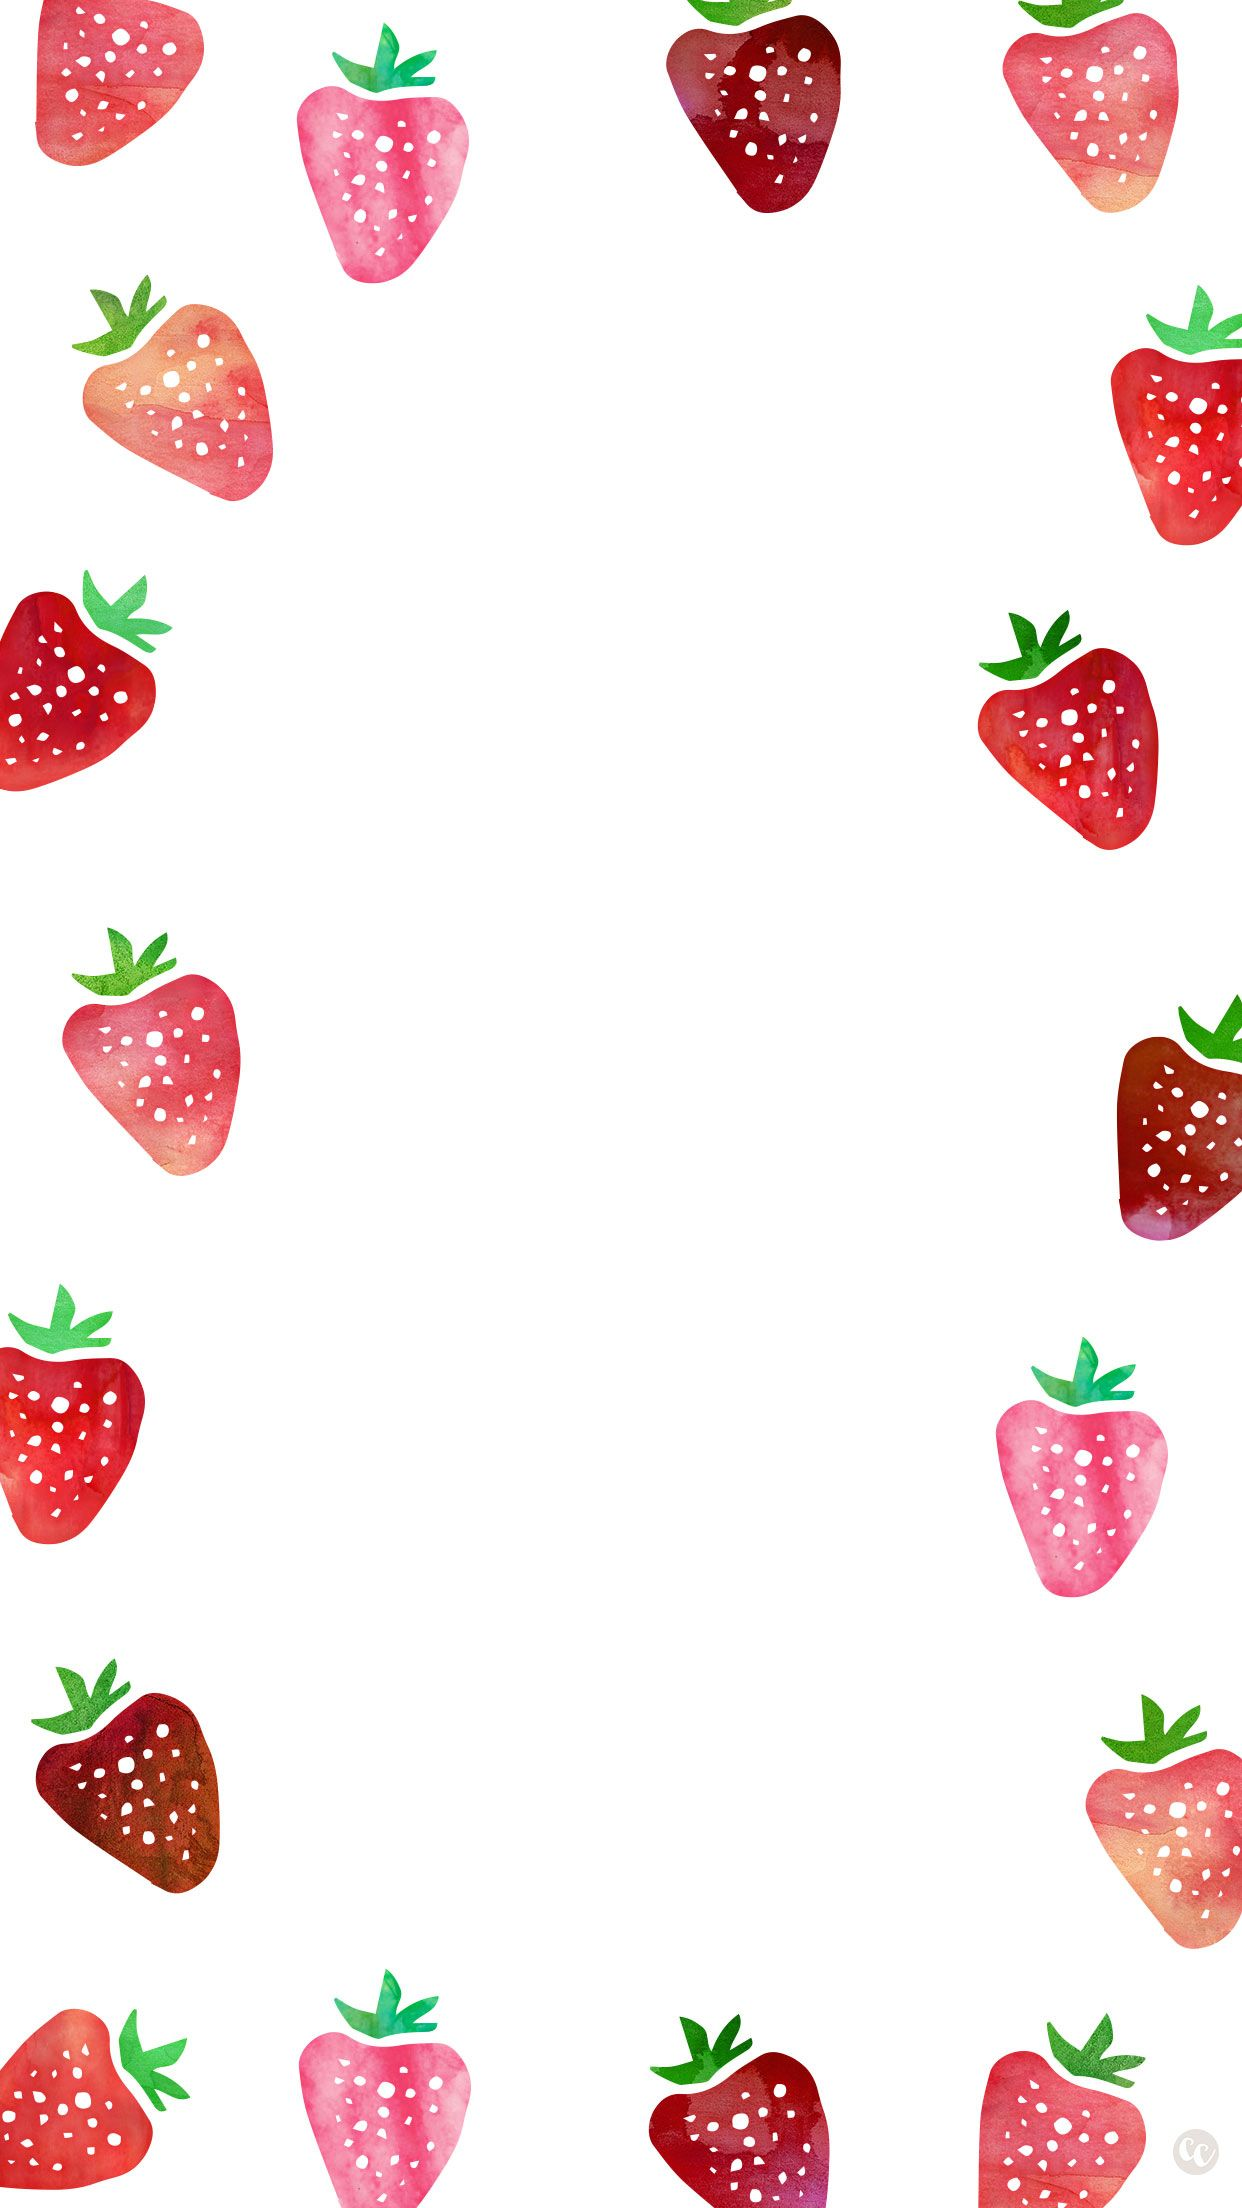 Strawberries clipart upo. Free wallpaper downloads for